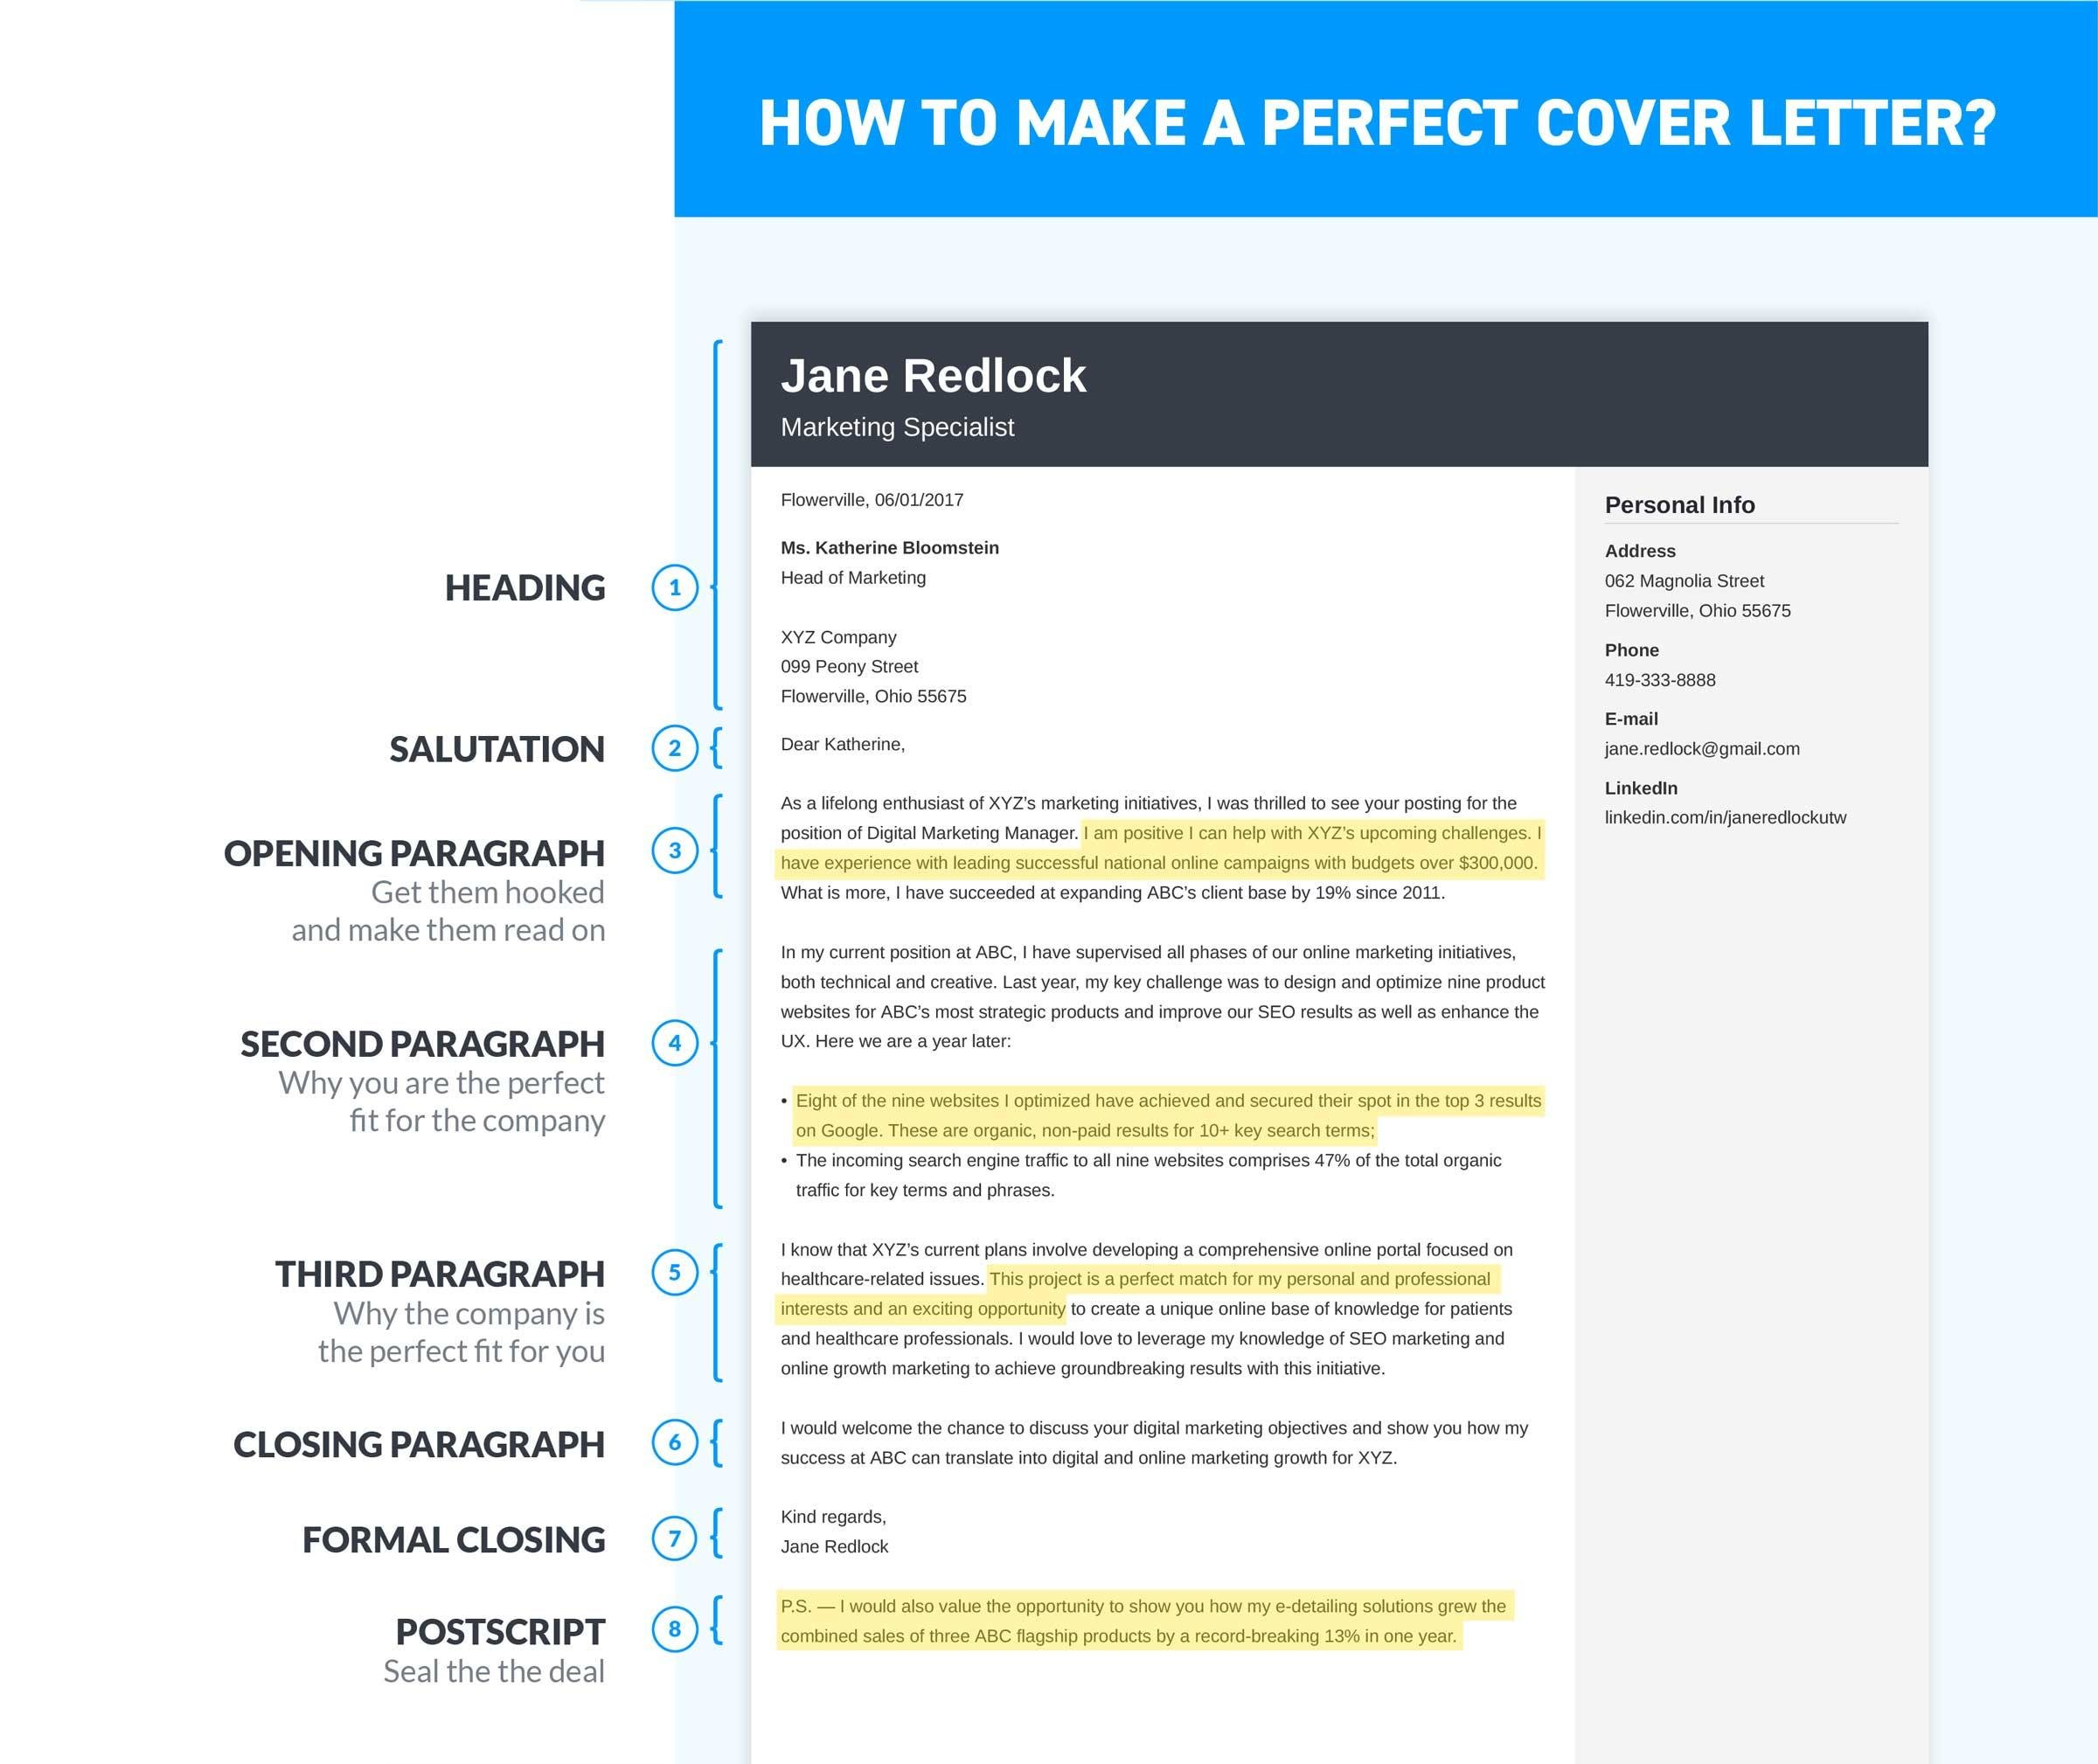 how to writea cover letter - how to write a cover letter in 8 simple steps 12 examples